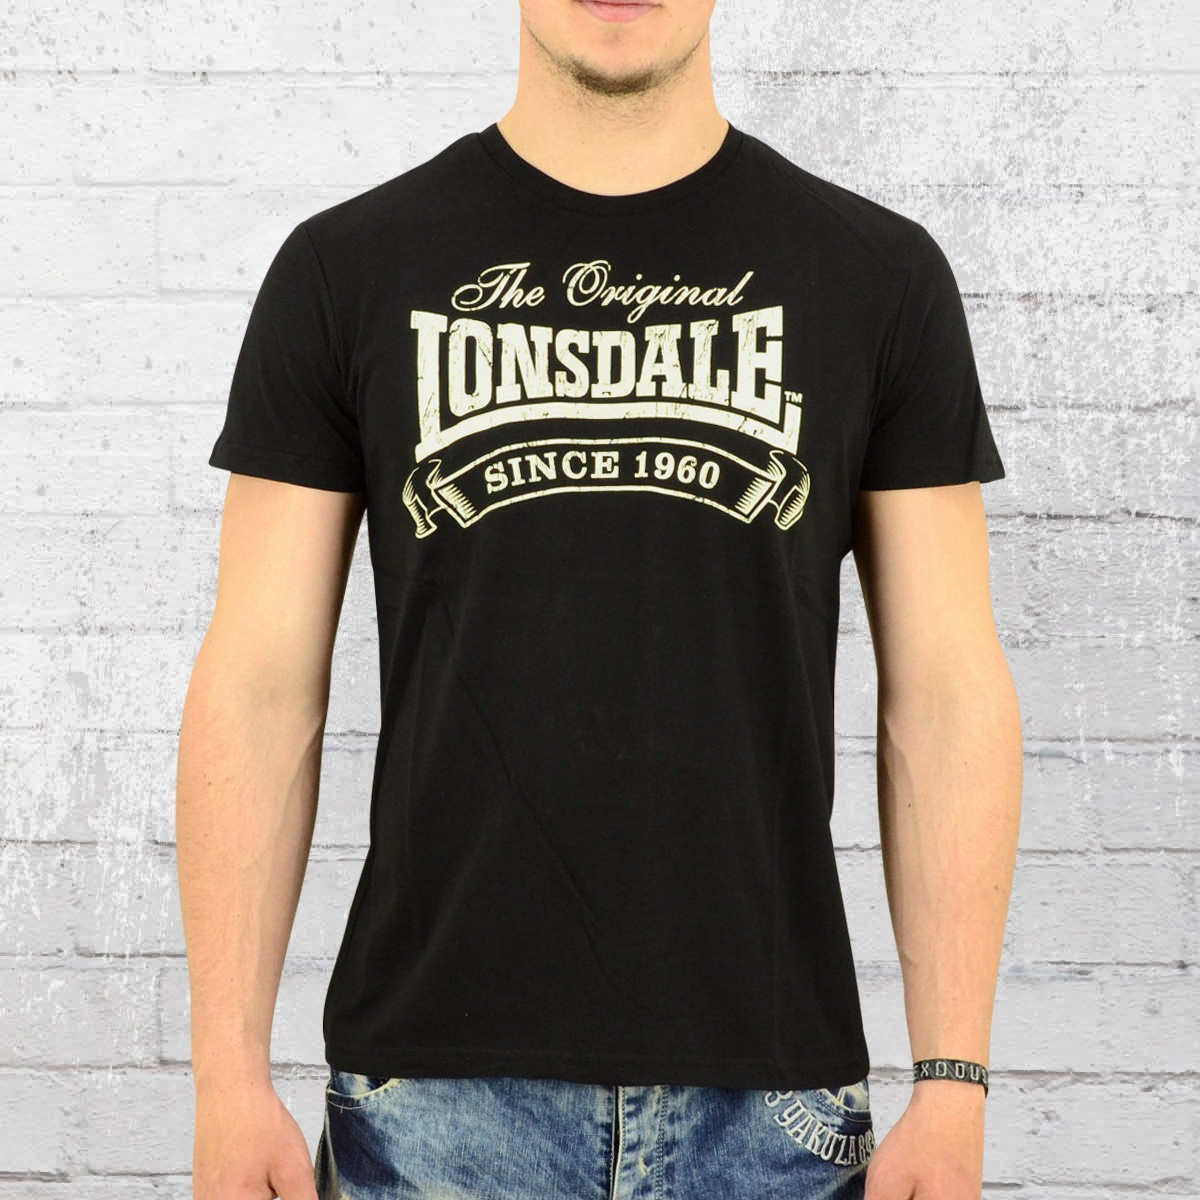 order now lonsdale london shirt men martock black. Black Bedroom Furniture Sets. Home Design Ideas